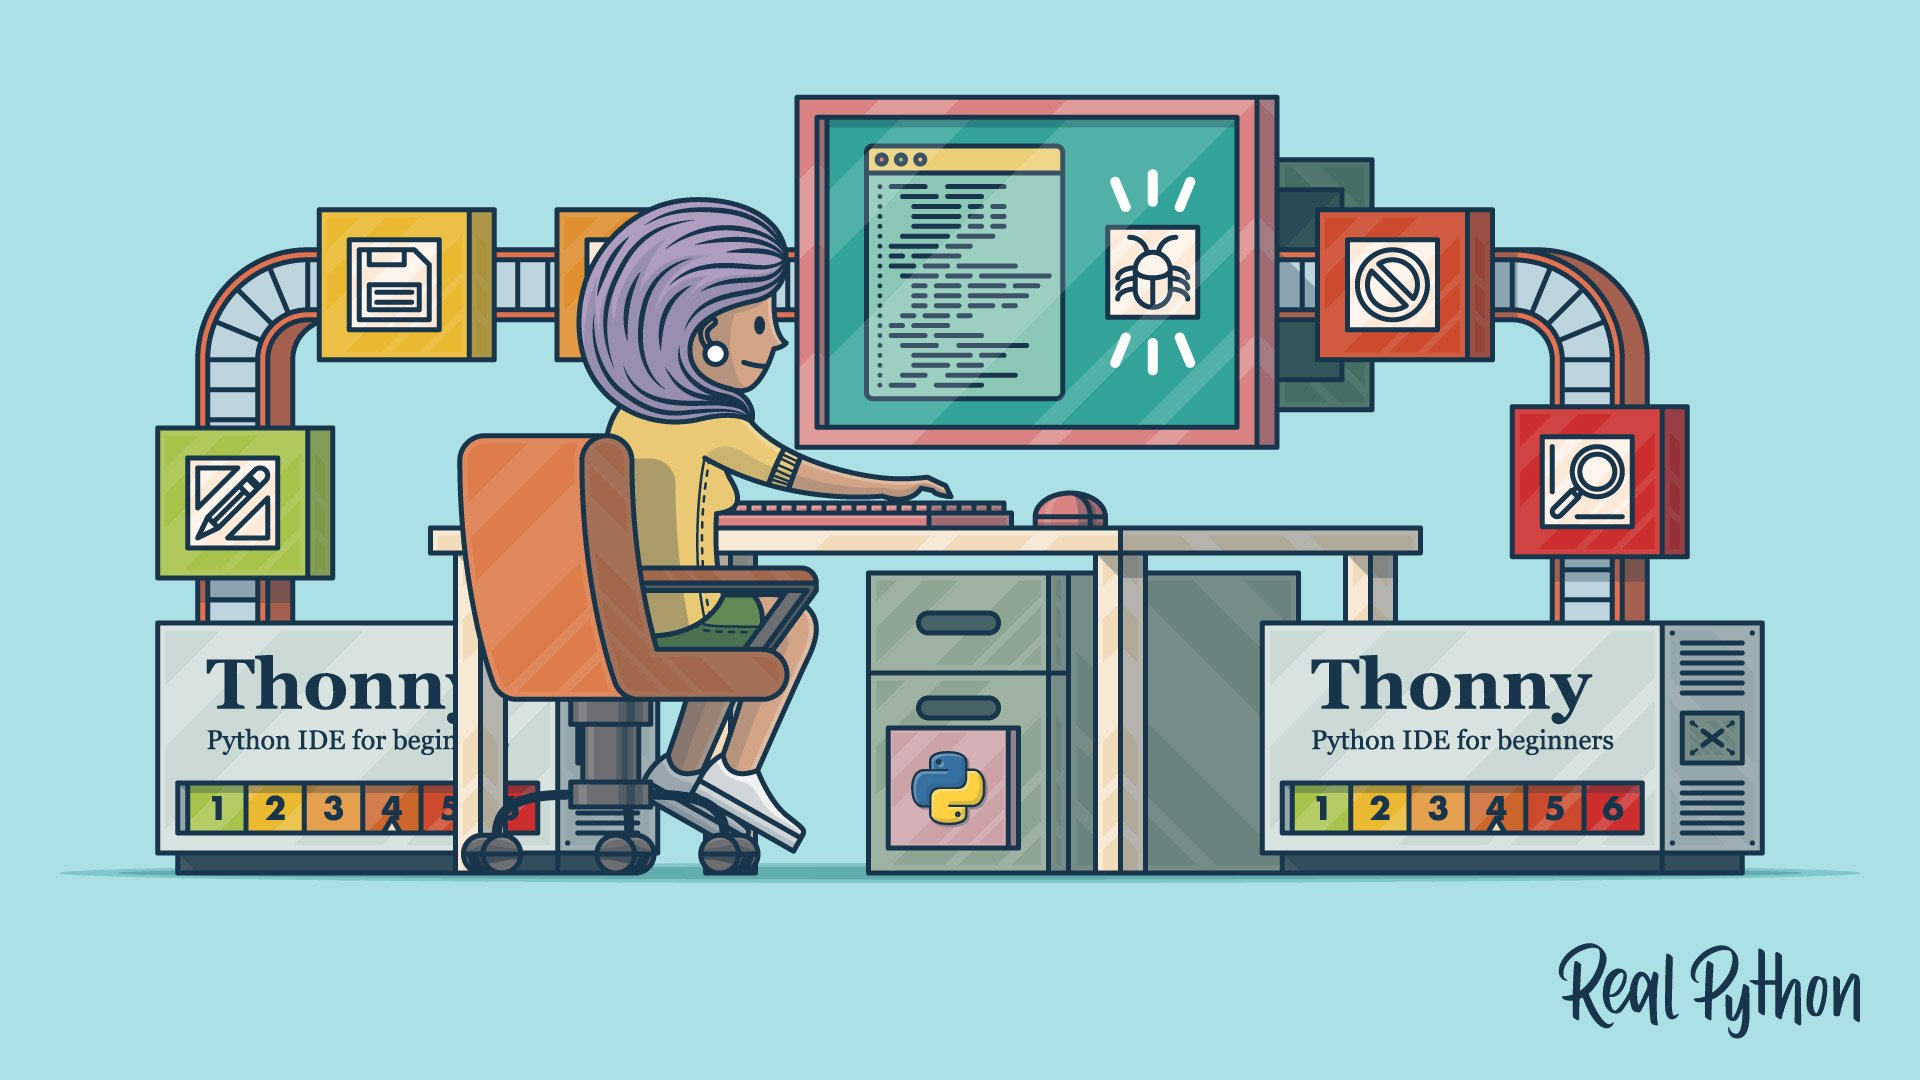 Thonny: The Beginner-Friendly Python Editor